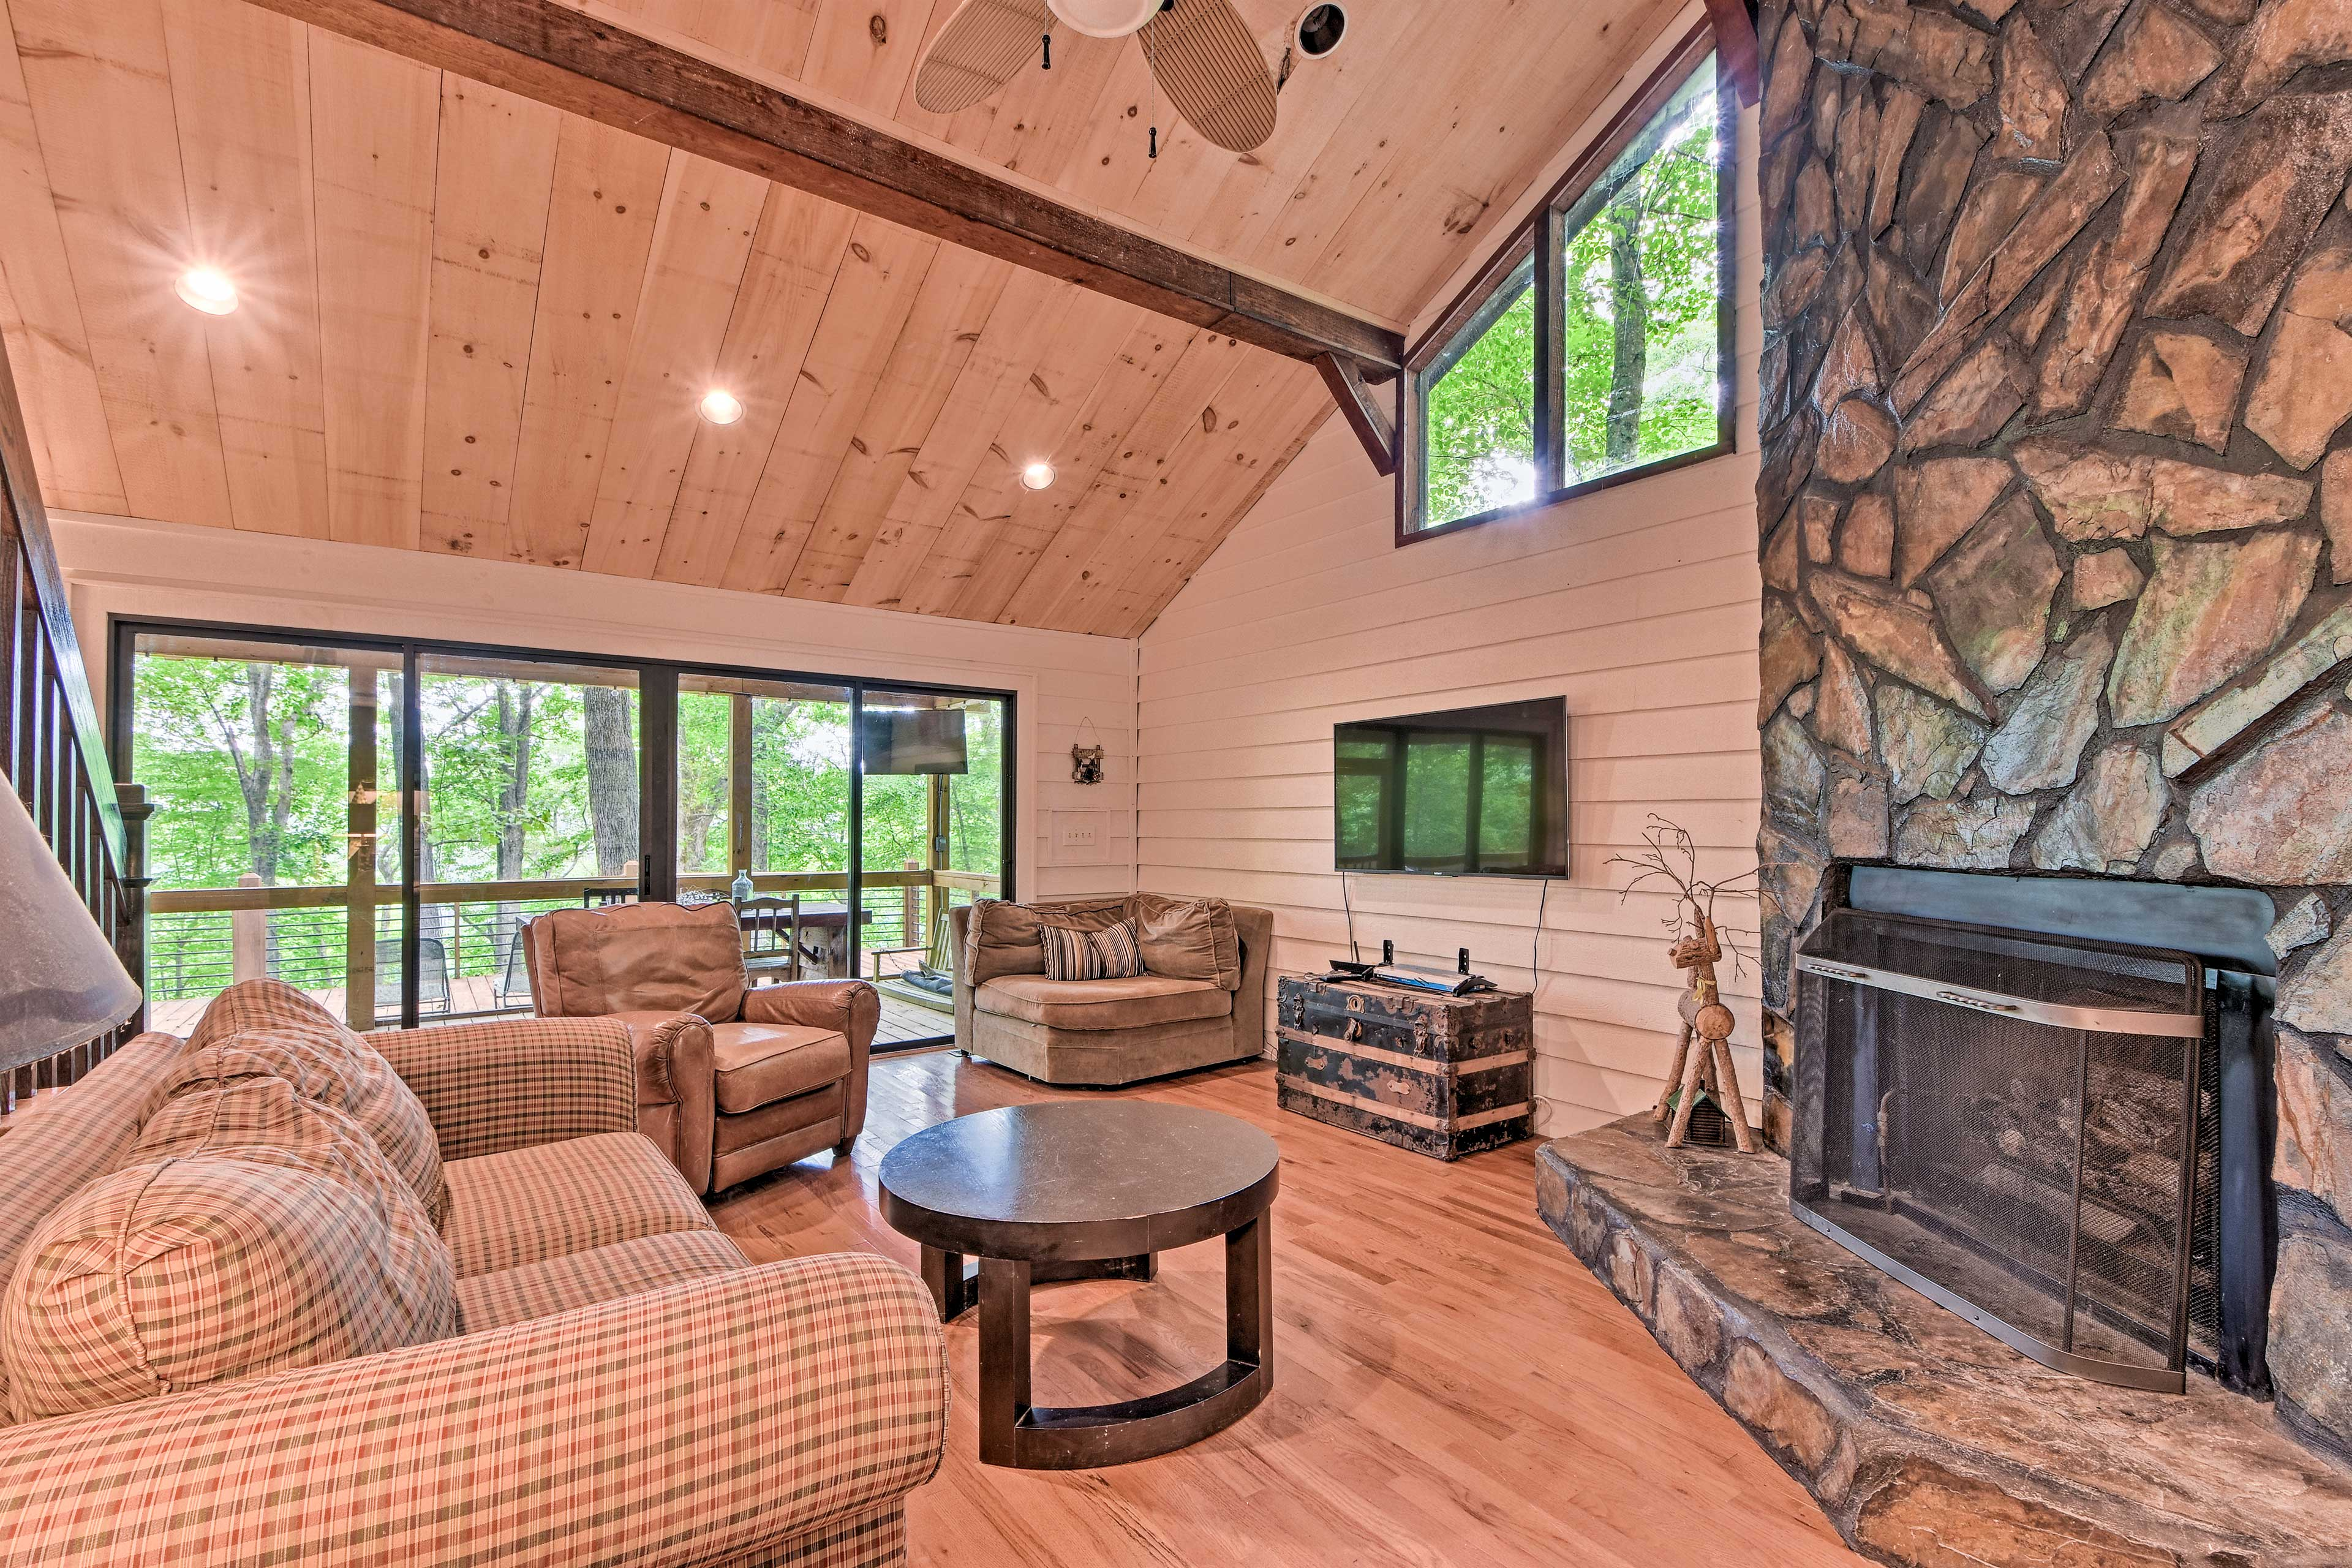 The 3-bedroom, 3-bath home provides plenty of room for your group of 8.